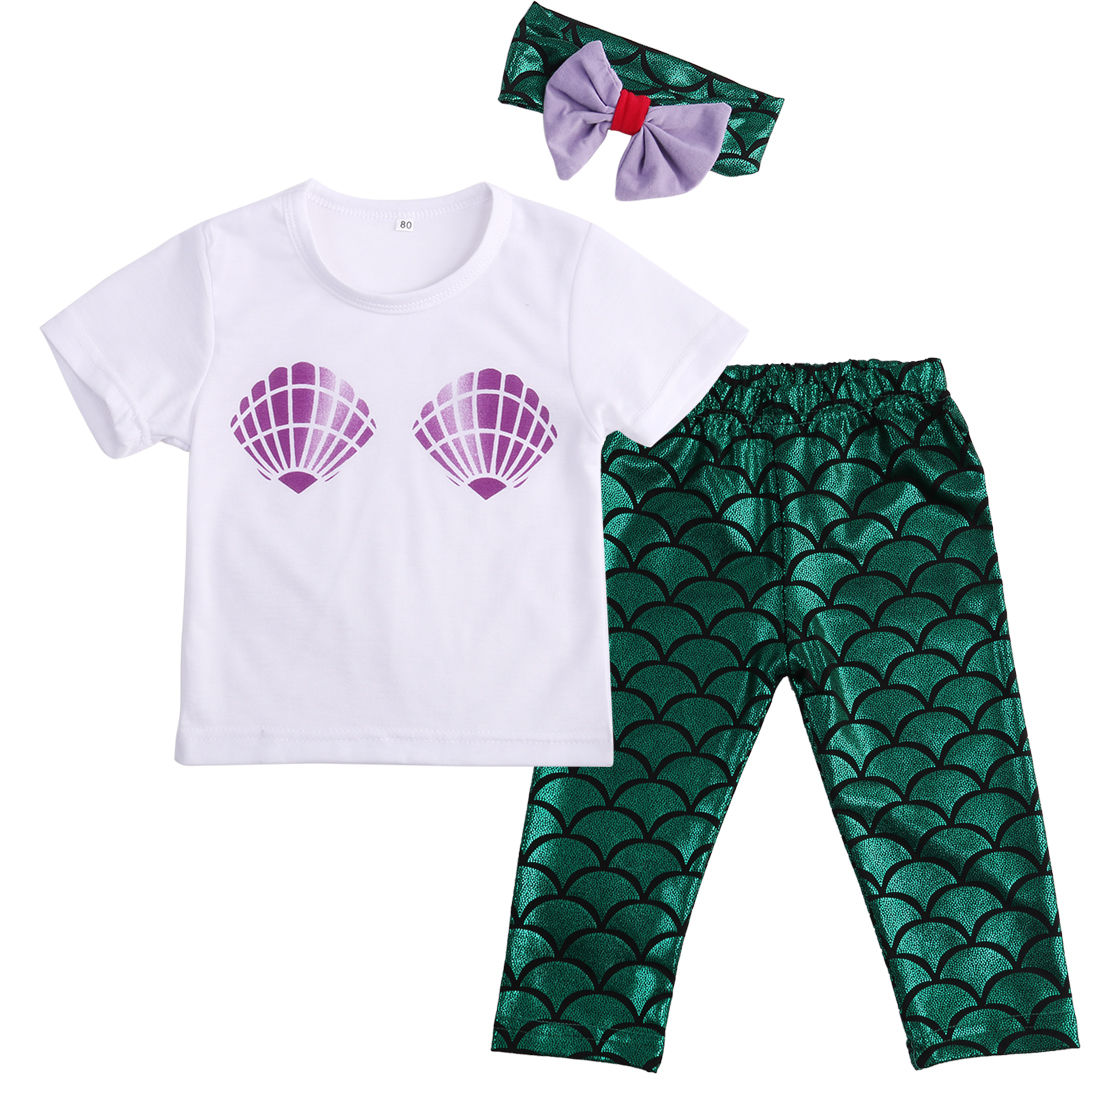 Kids Infant Toddler Baby Girl Clothes Shell Tops T shirt Mermaid Pants Leggings Headband 3PCS Outfits Set baby girl 1st birthday outfits short sleeve infant clothing sets lace romper dress headband shoe toddler tutu set baby s clothes